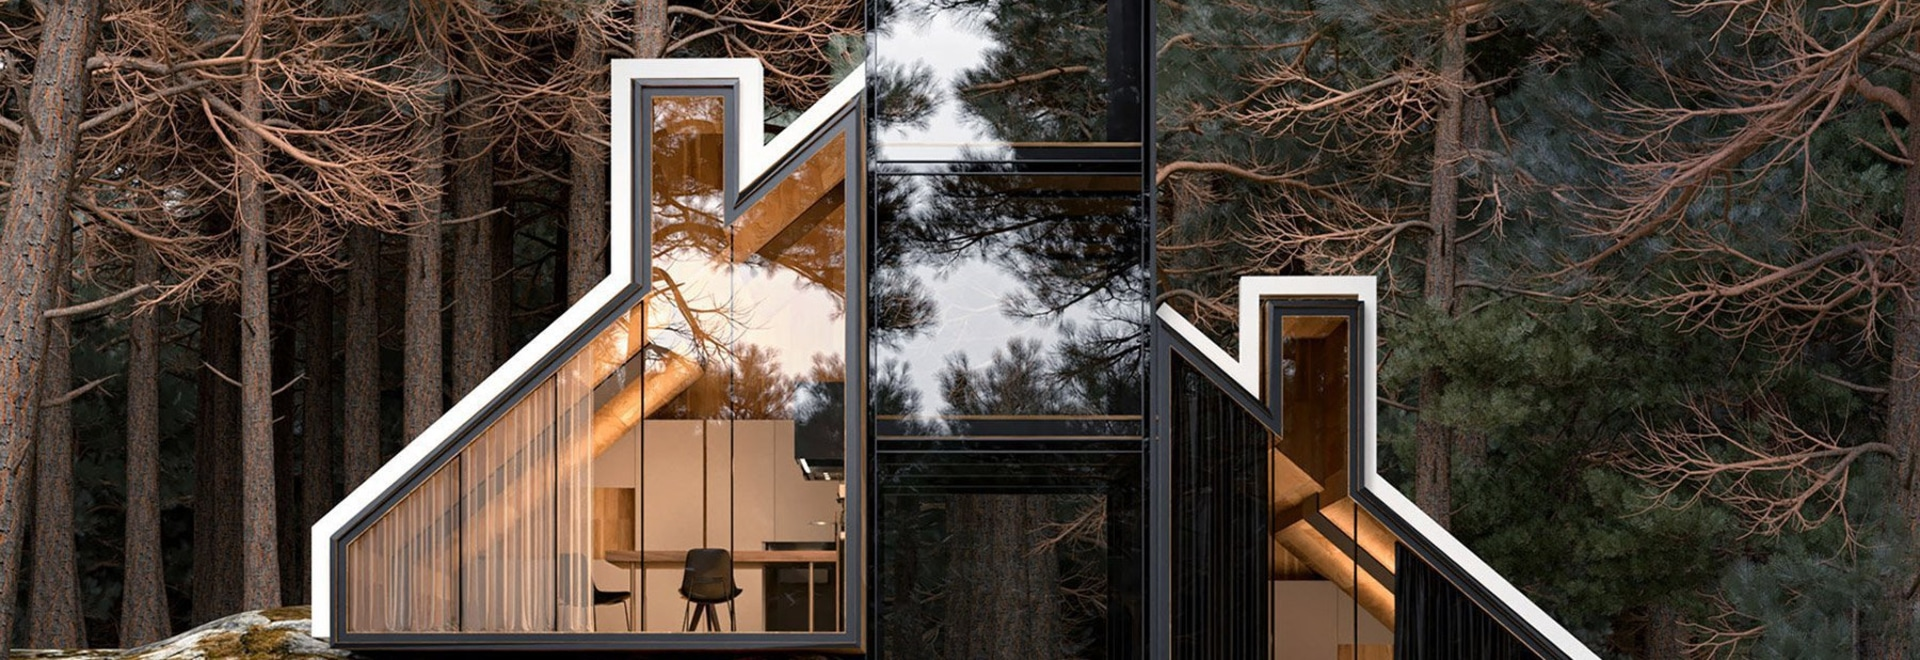 alex nerovnya's YORK house provides a sense of connection with the wild environment